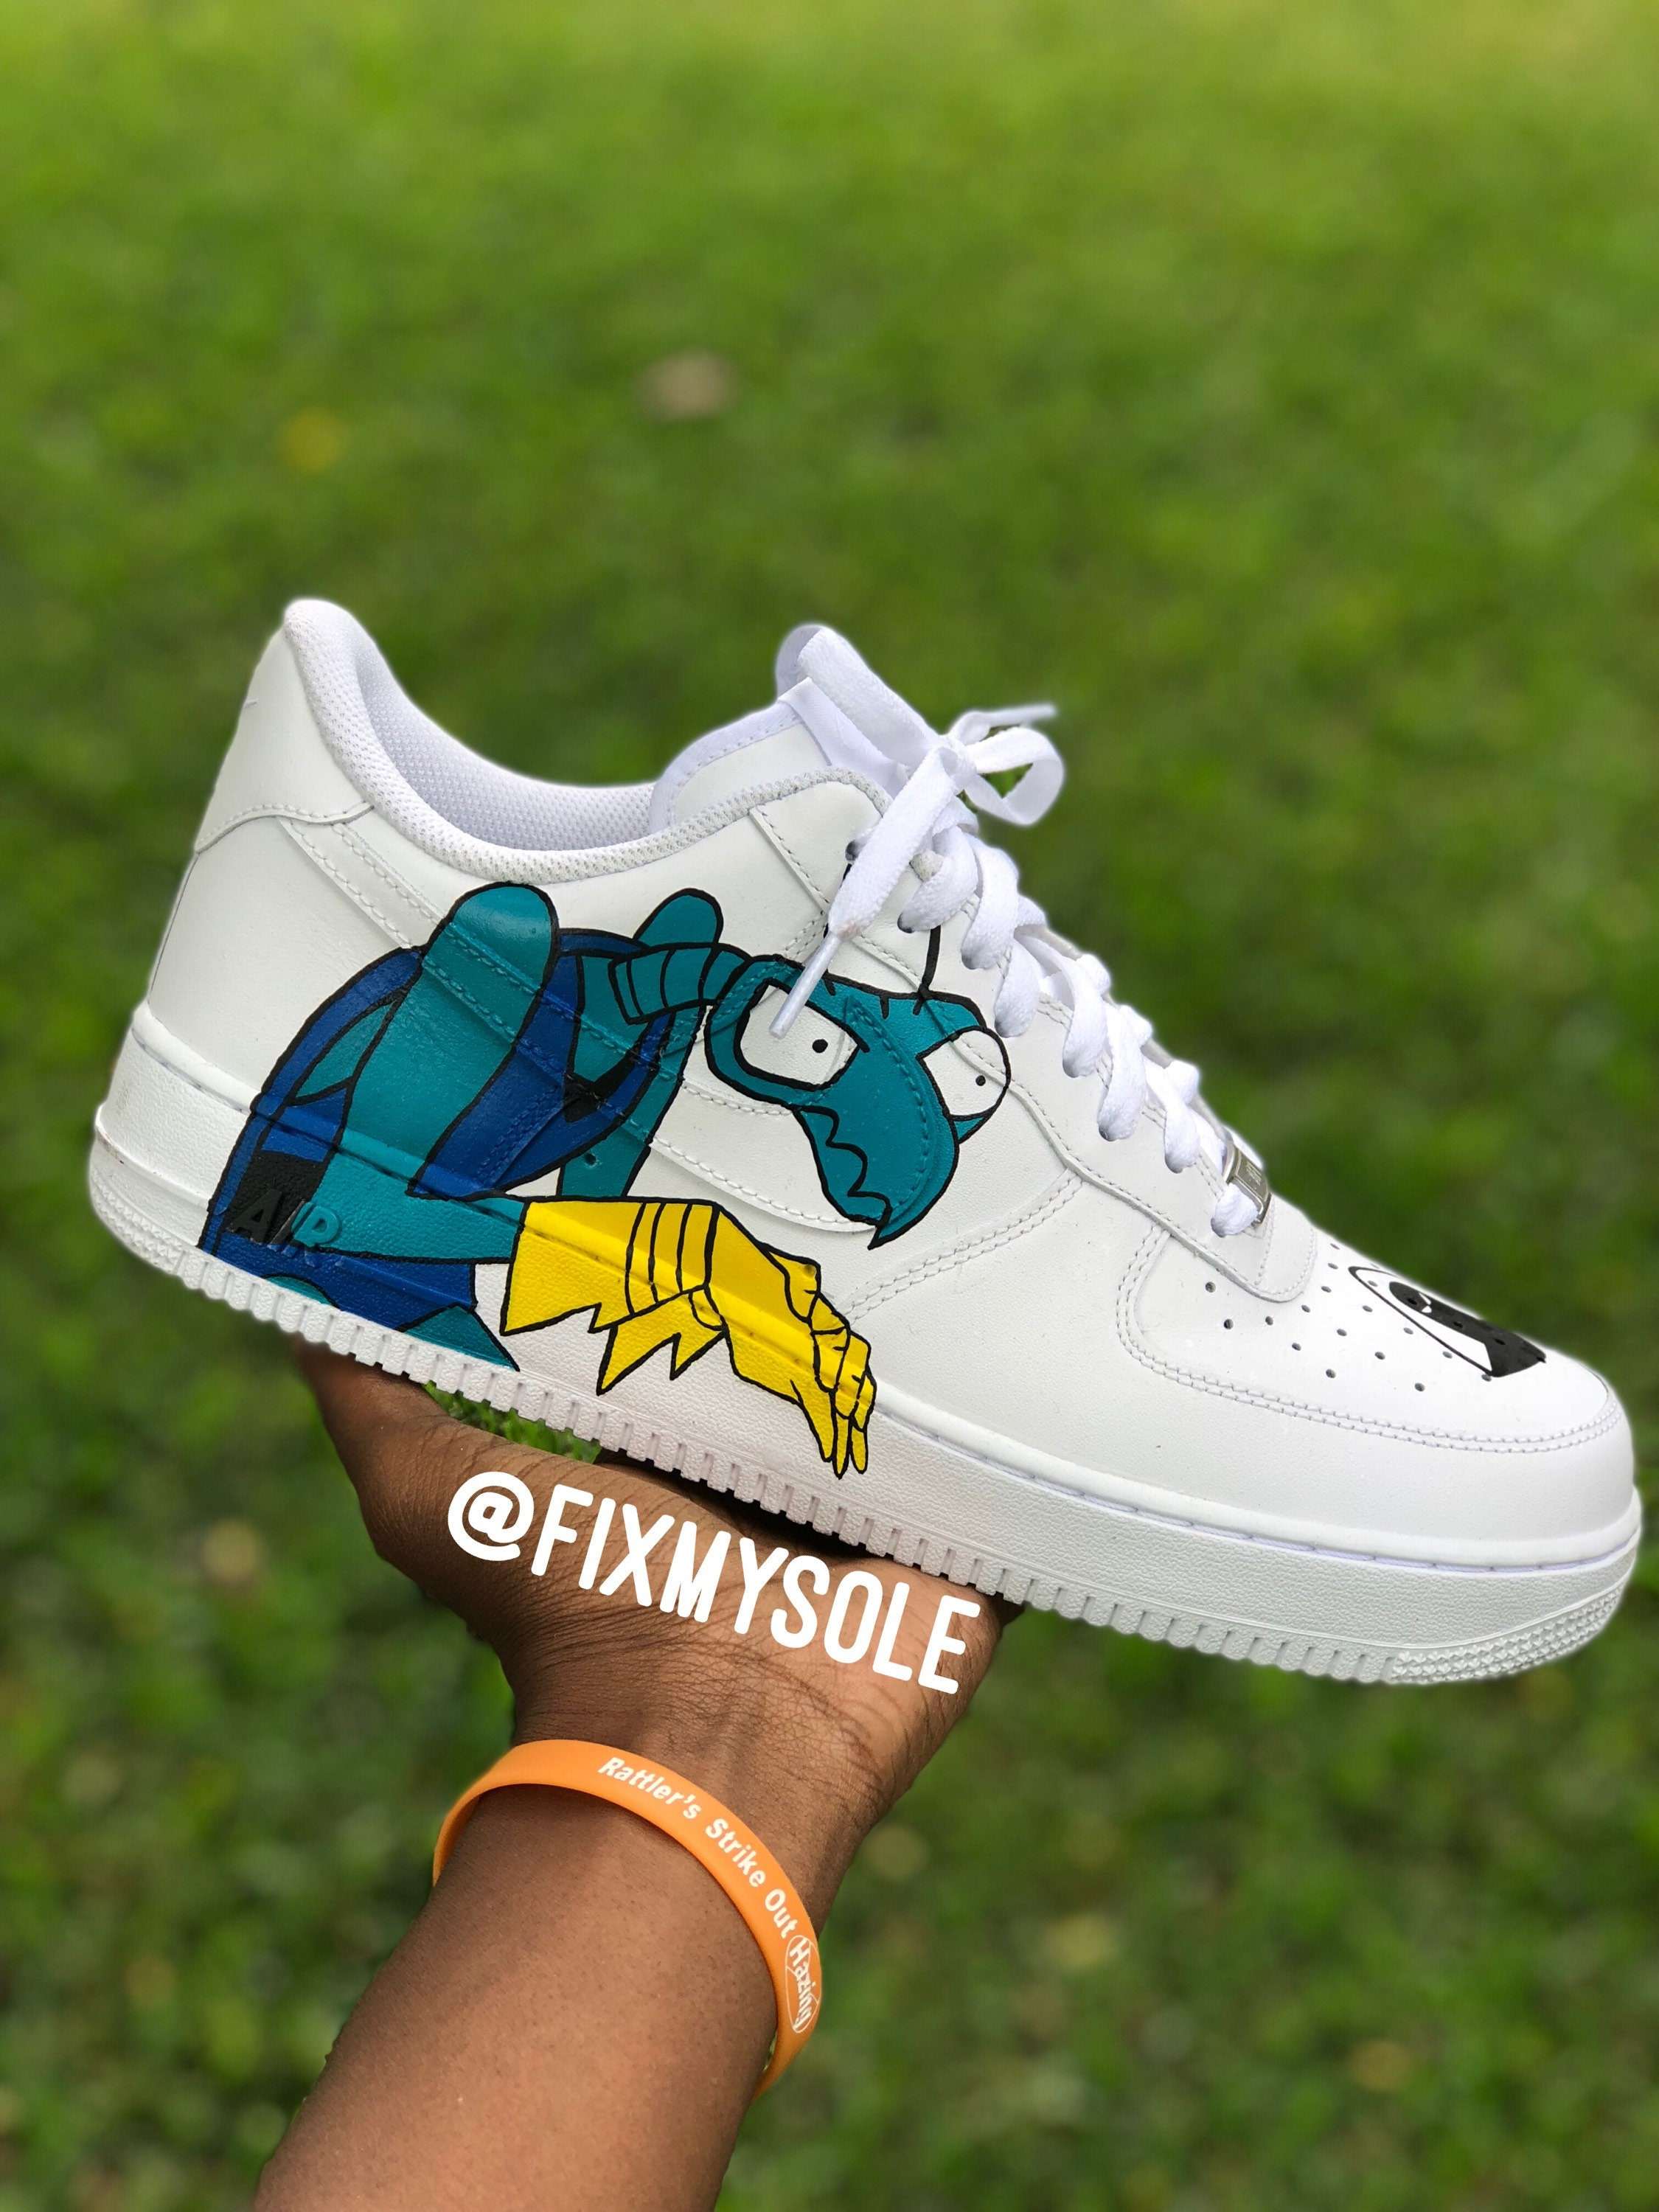 Espace Ones personnalisé Ghost Air Force Ones Espace ae3cde